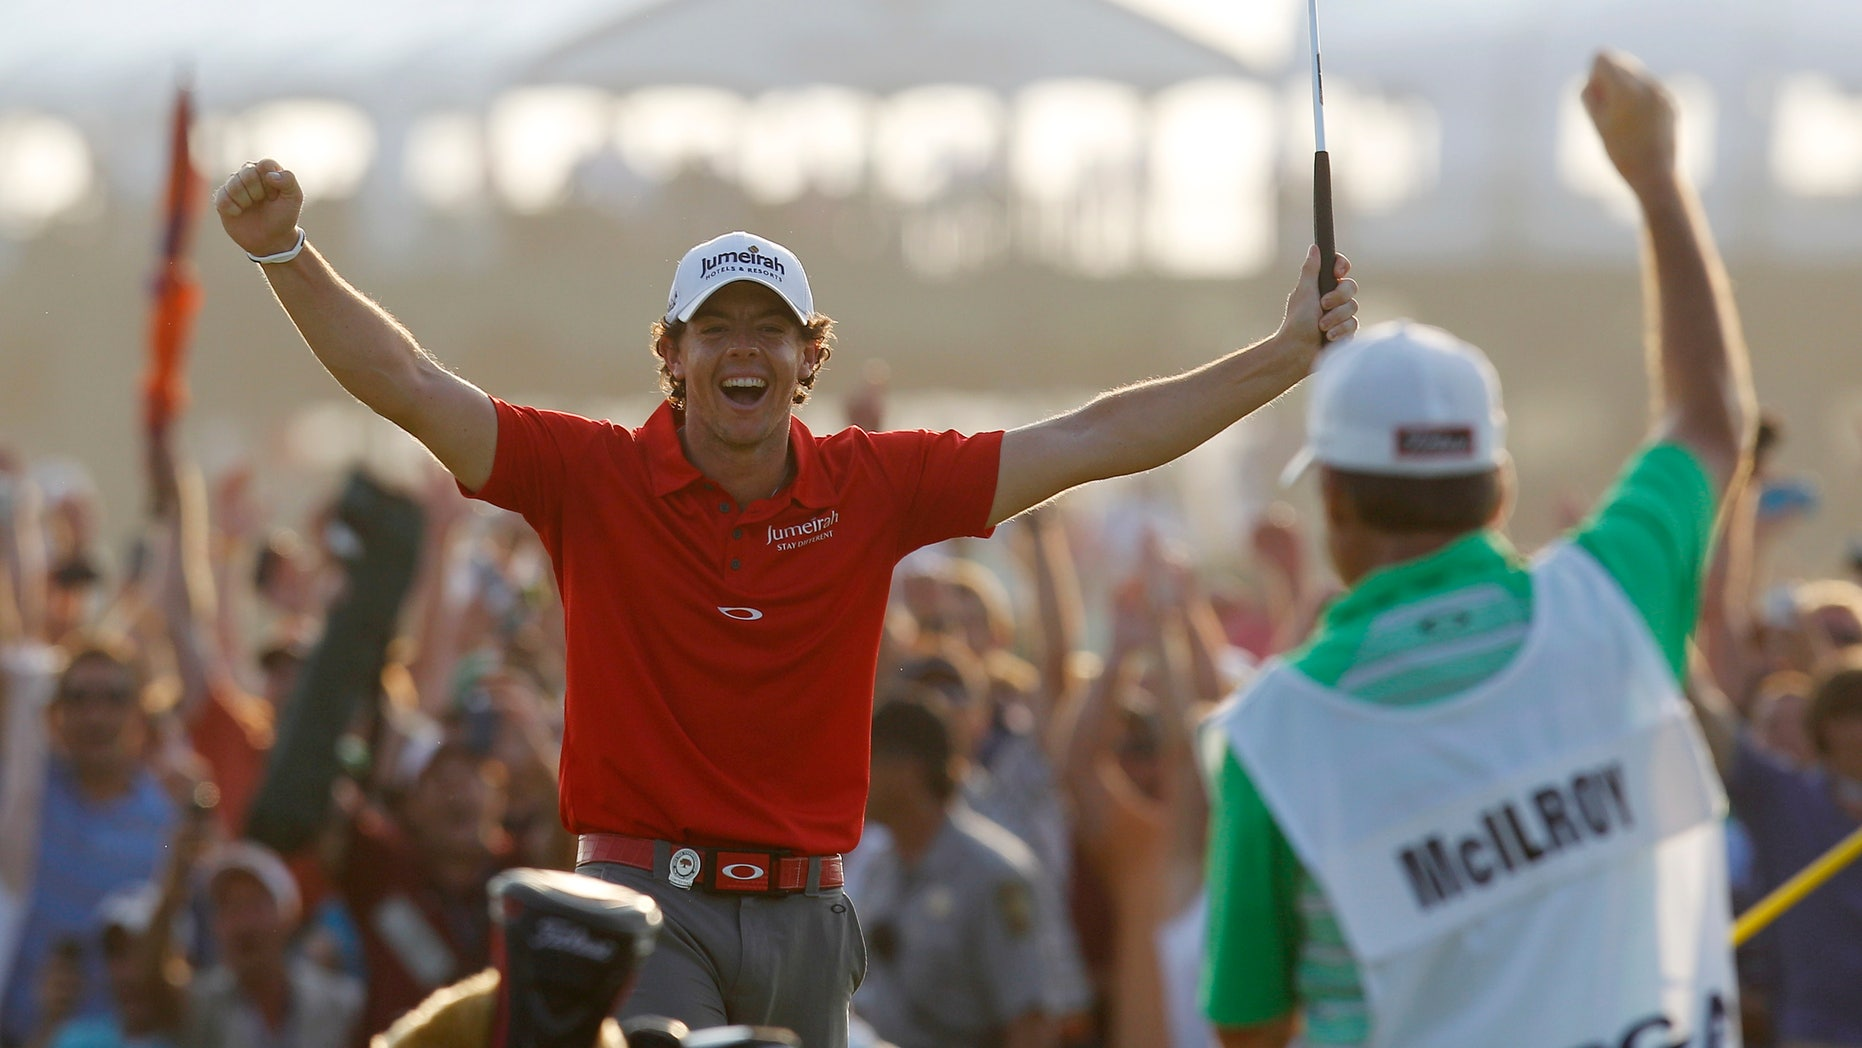 Aug. 12, 2012: Rory McIlroy of Northern Ireland reacts to his victory after a birdie putt on the 18th green during the final round of the PGA Championship golf tournament on the Ocean Course of the Kiawah Island Golf Resort in Kiawah Island, S.C.